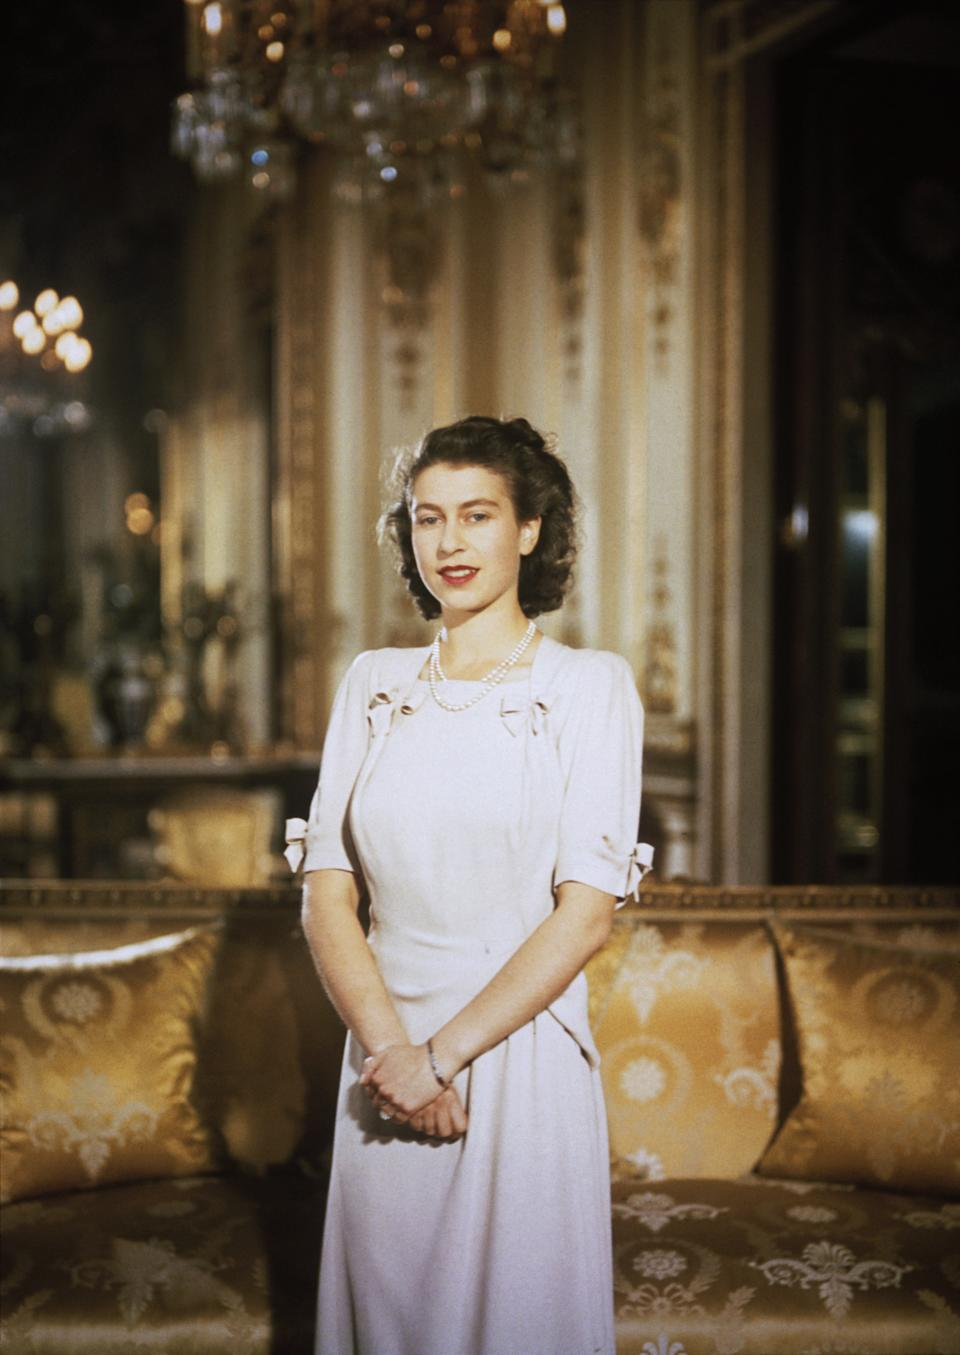 Princess Elizabeth poses during engagement announcement.